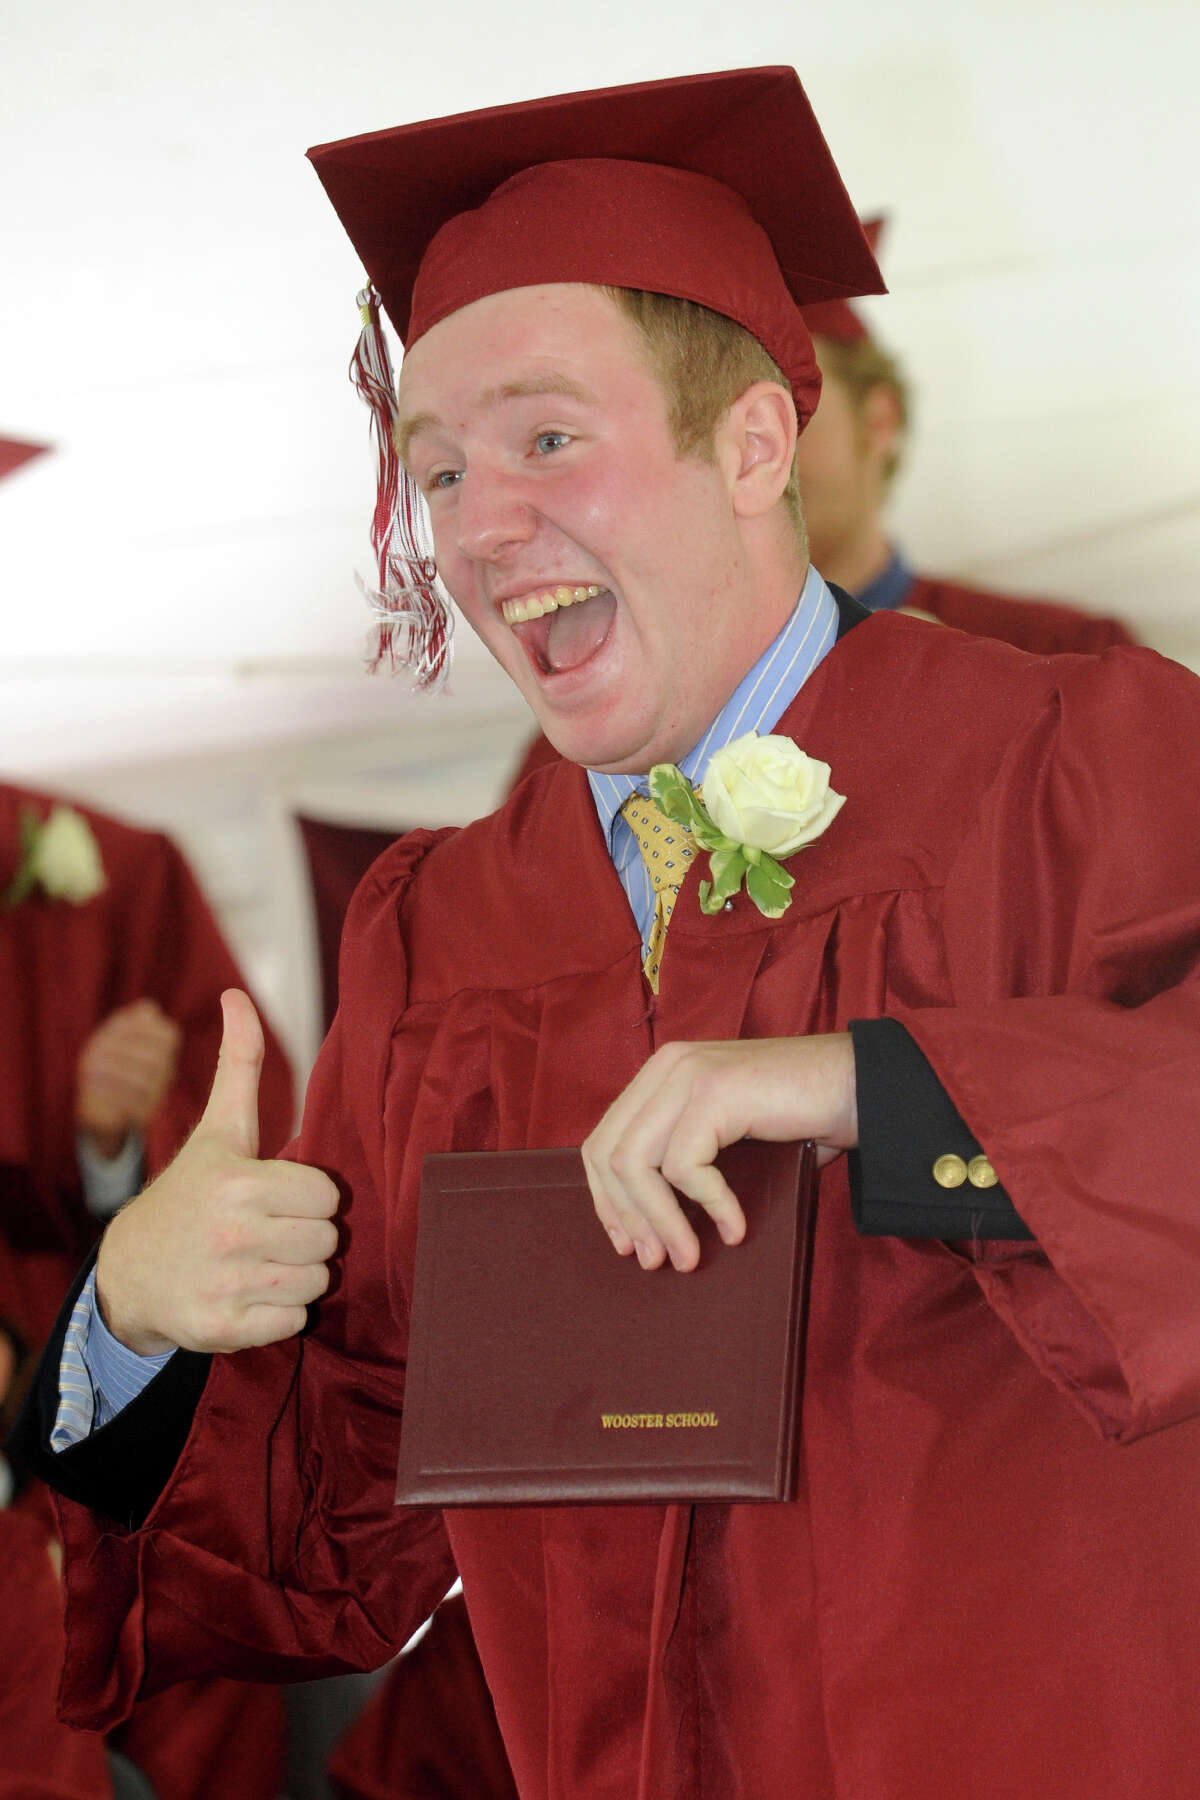 Richard Randolph, of Danbury, gives the thumbs up after receiving his diploma during commencement for the Wooster School Class of 2013, in Danbury, Conn., June 14th, 2013